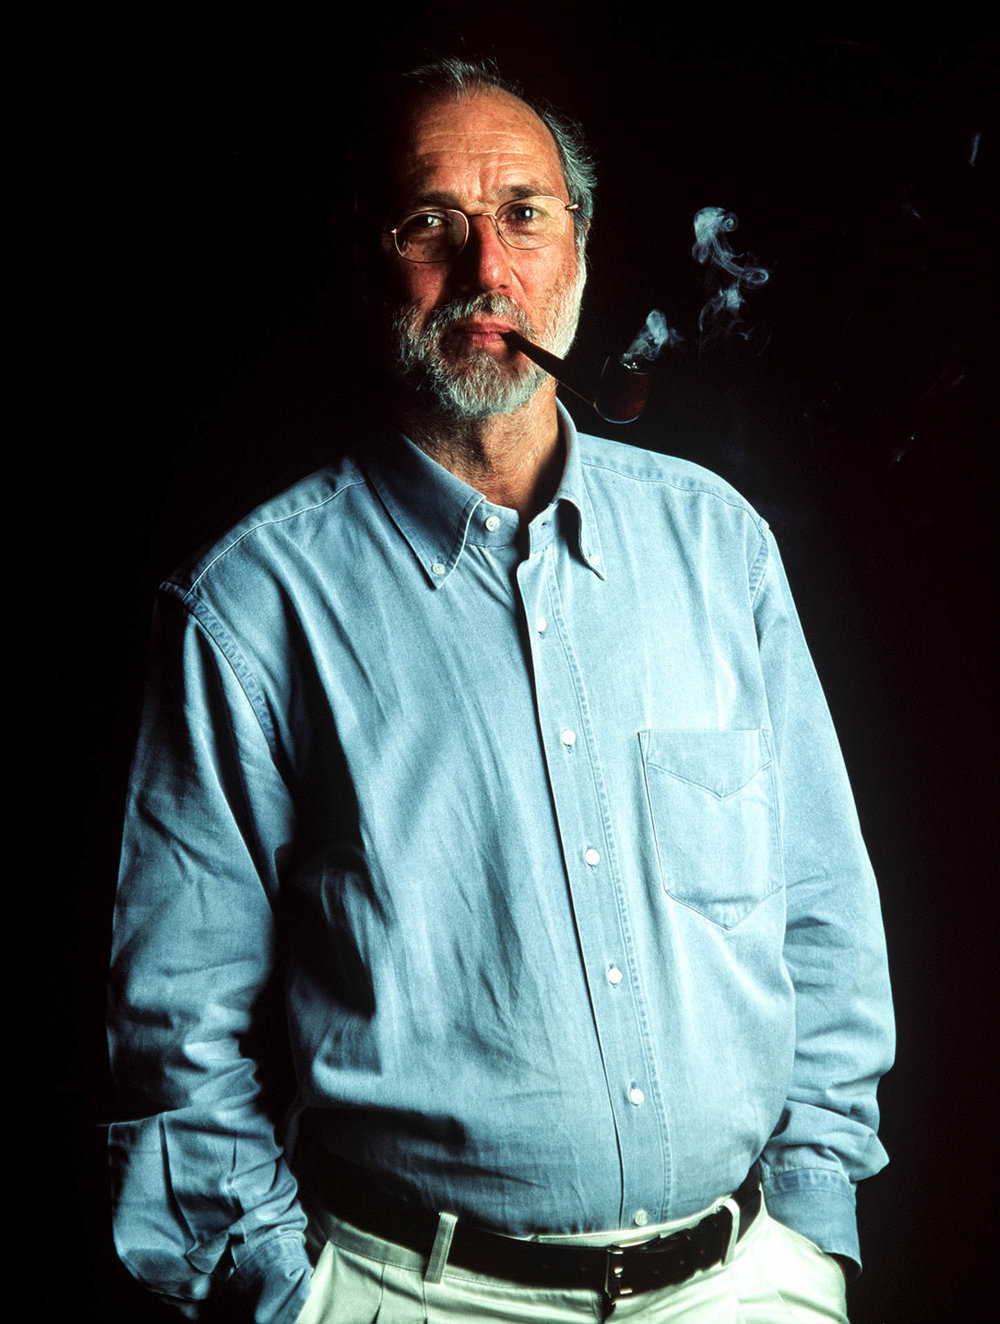 Genoa, Italy - May 15, 2000